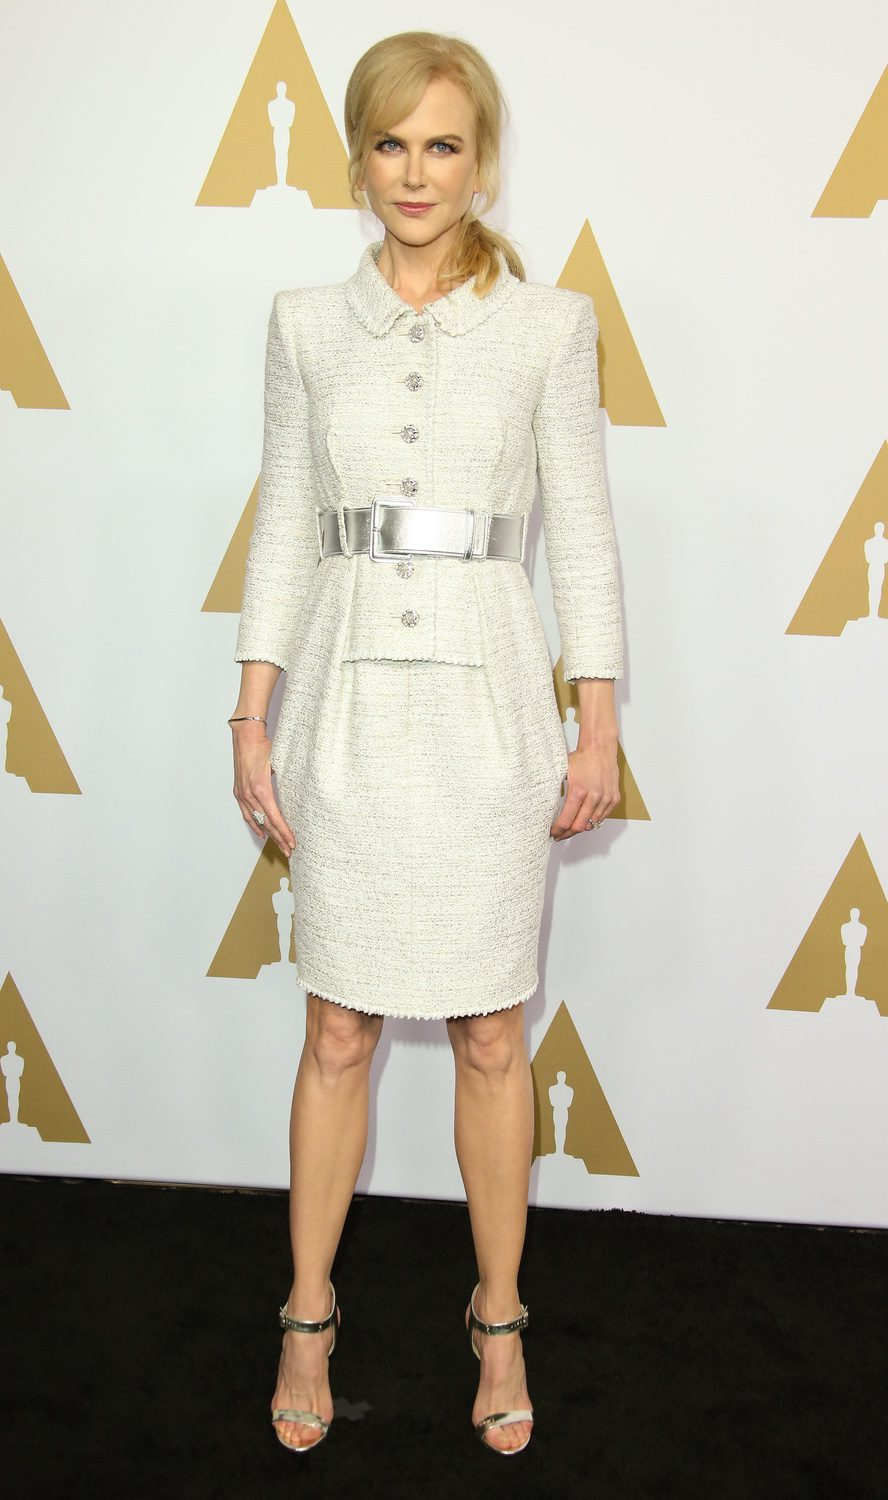 Nicole Kidman at the 2017 Annual Academy Awards Nominee Luncheon